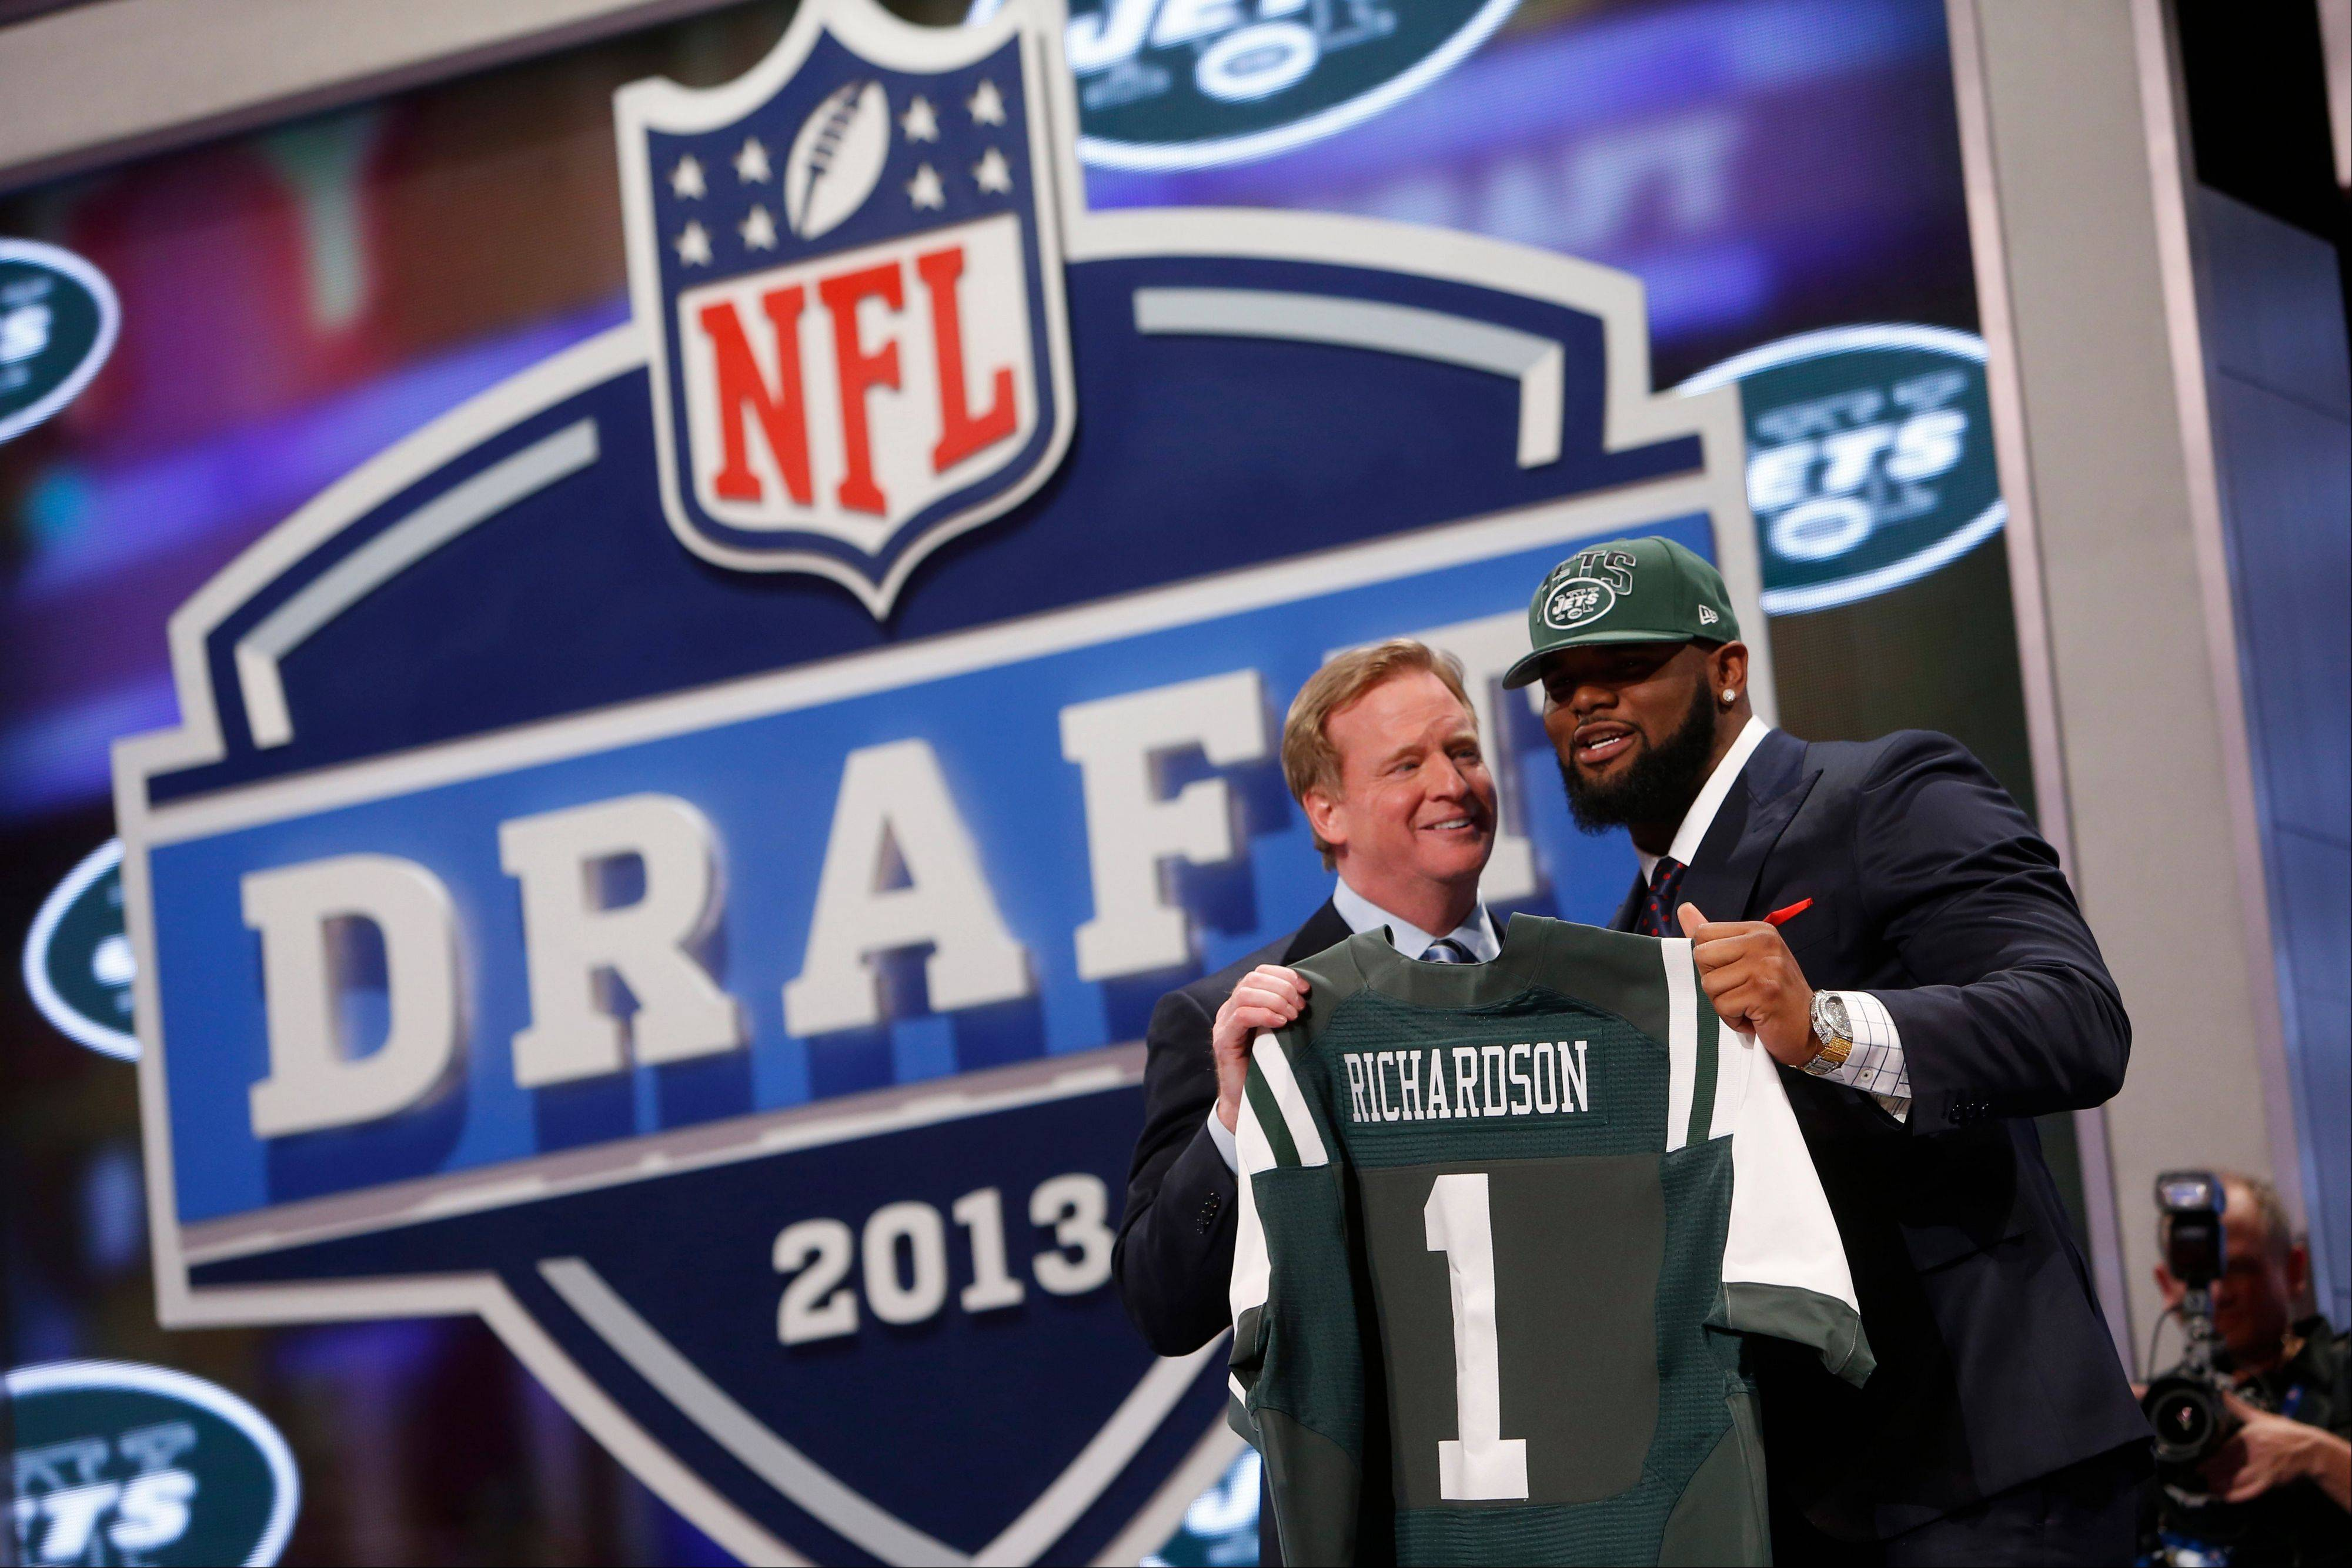 Defensive tackle Sheldon Richardson from Missouri stands with NFL commissioner Roger Goodell after being selected thirteenth overall by the New York Jets in the first round of the NFL football draft, Thursday, April 25, 2013 at Radio City Music Hall in New York.